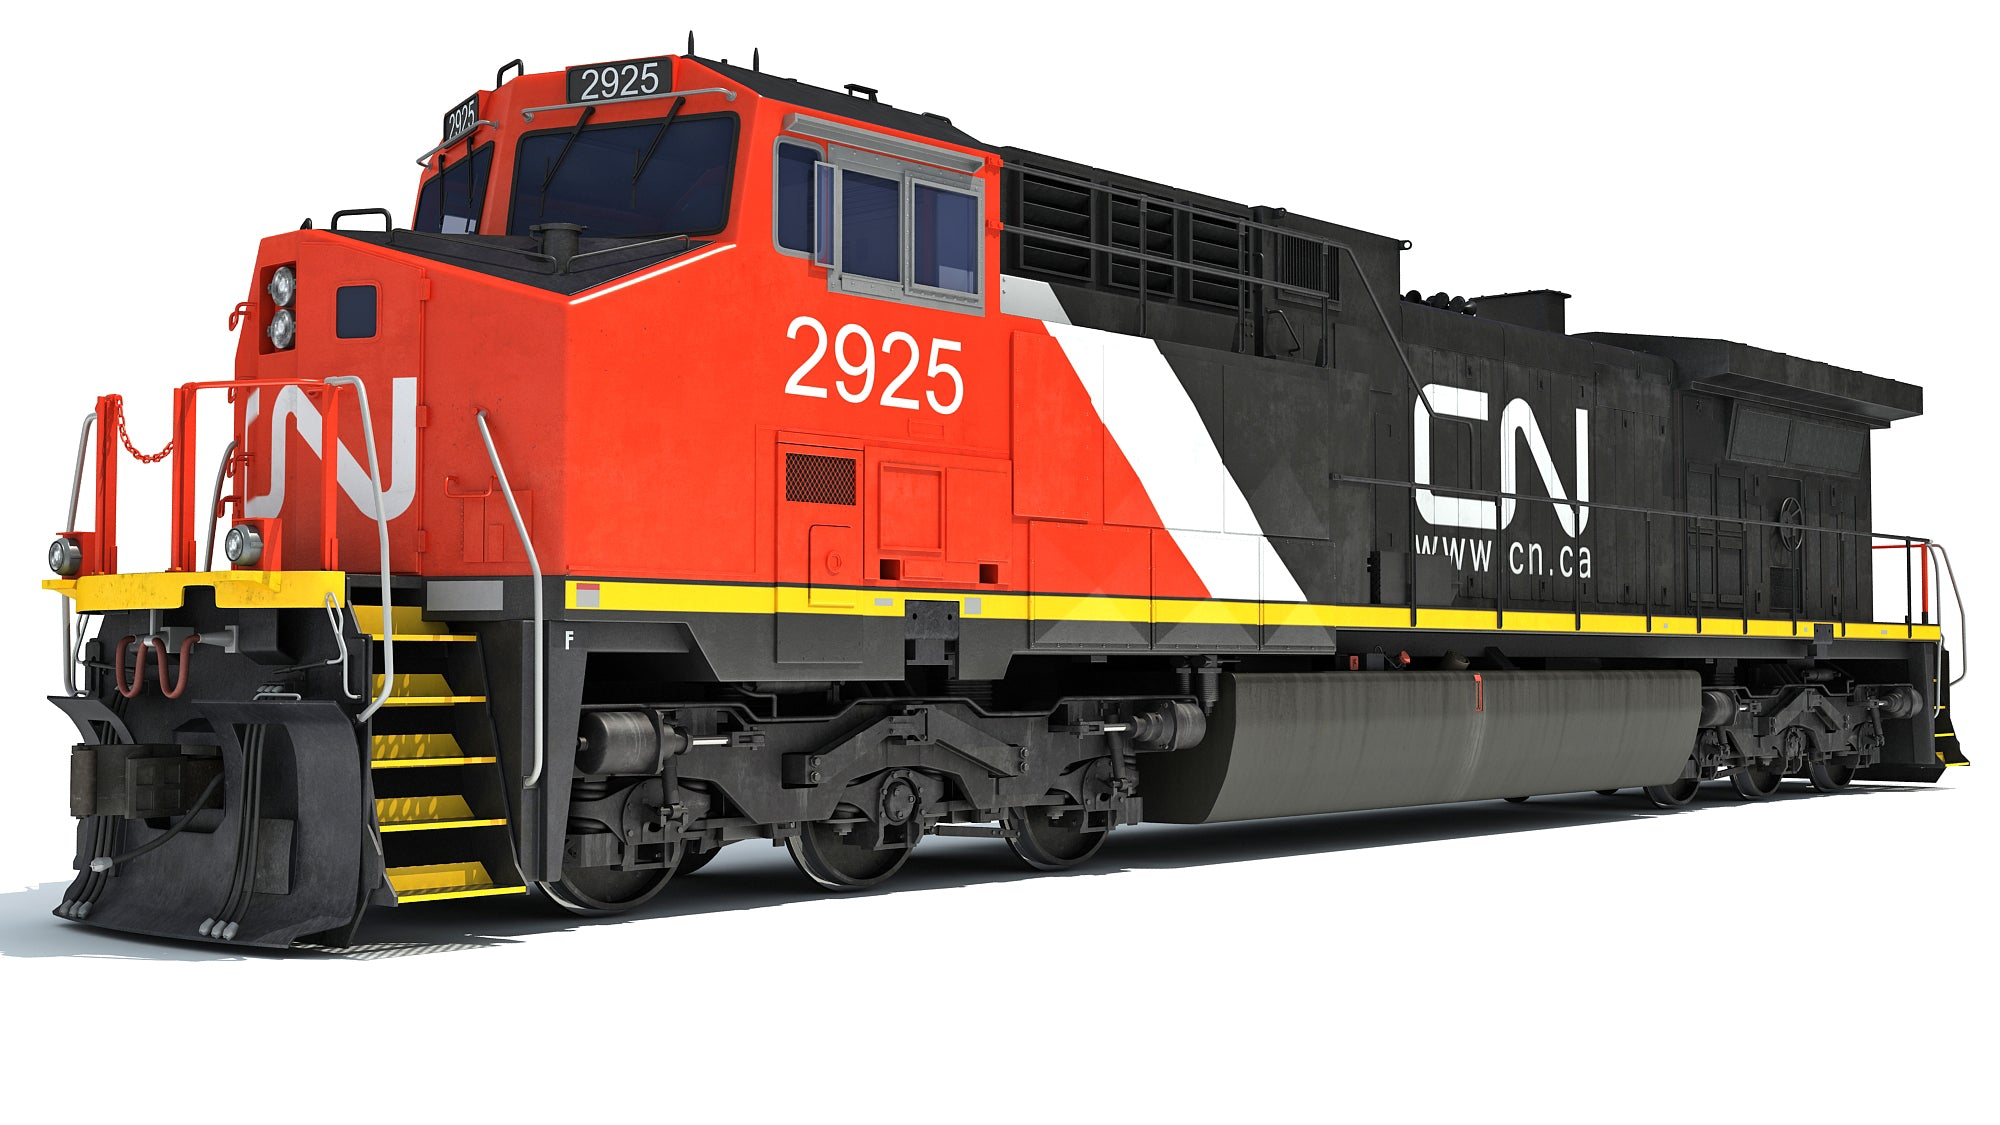 Locomotive Canadian National Railway CN 3D